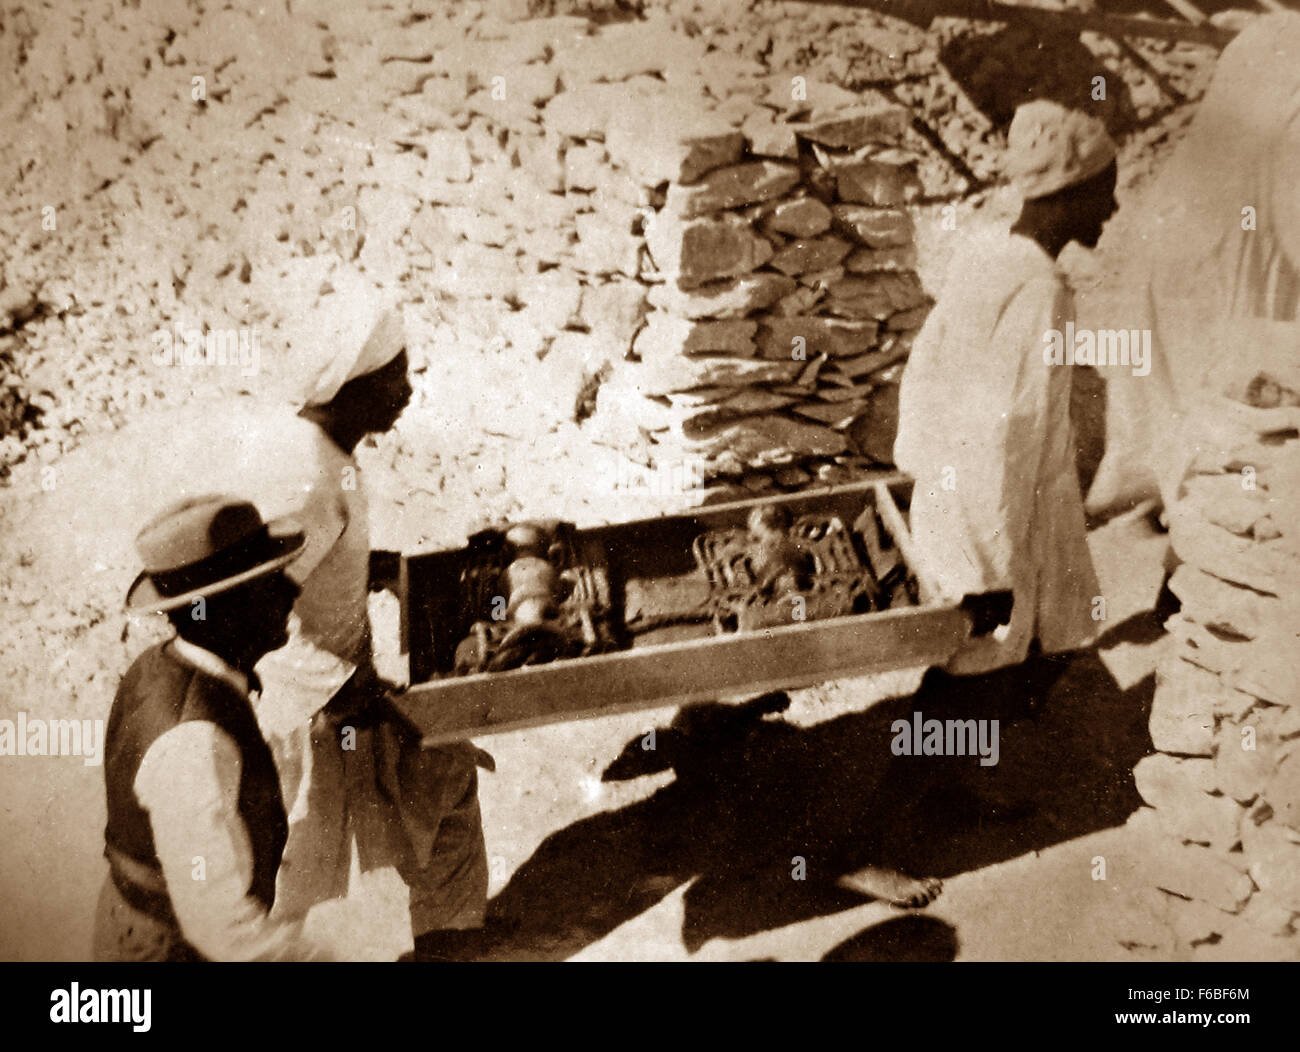 Removing items from the tomb of Tutankhamun in the Valley of the Kings, Egypt in 1922 - Stock Image